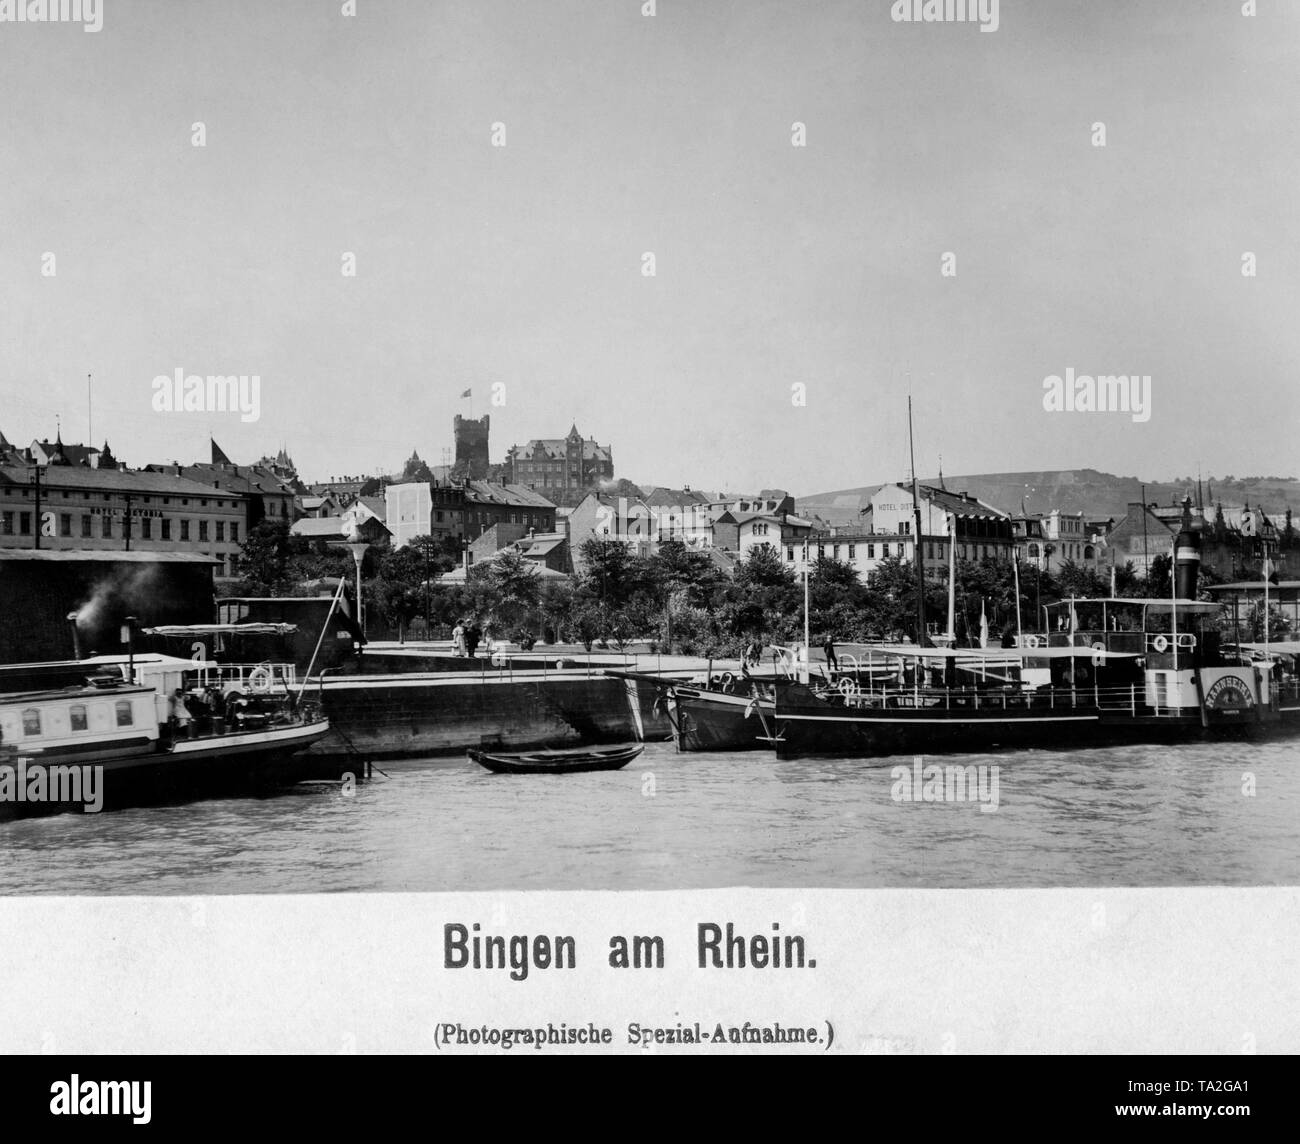 Bingen am Rhein photographed from the river, in the foreground pier with ships and in the background the Hotel Victoria, Klopp Castle and the Hotel Distel. - Stock Image